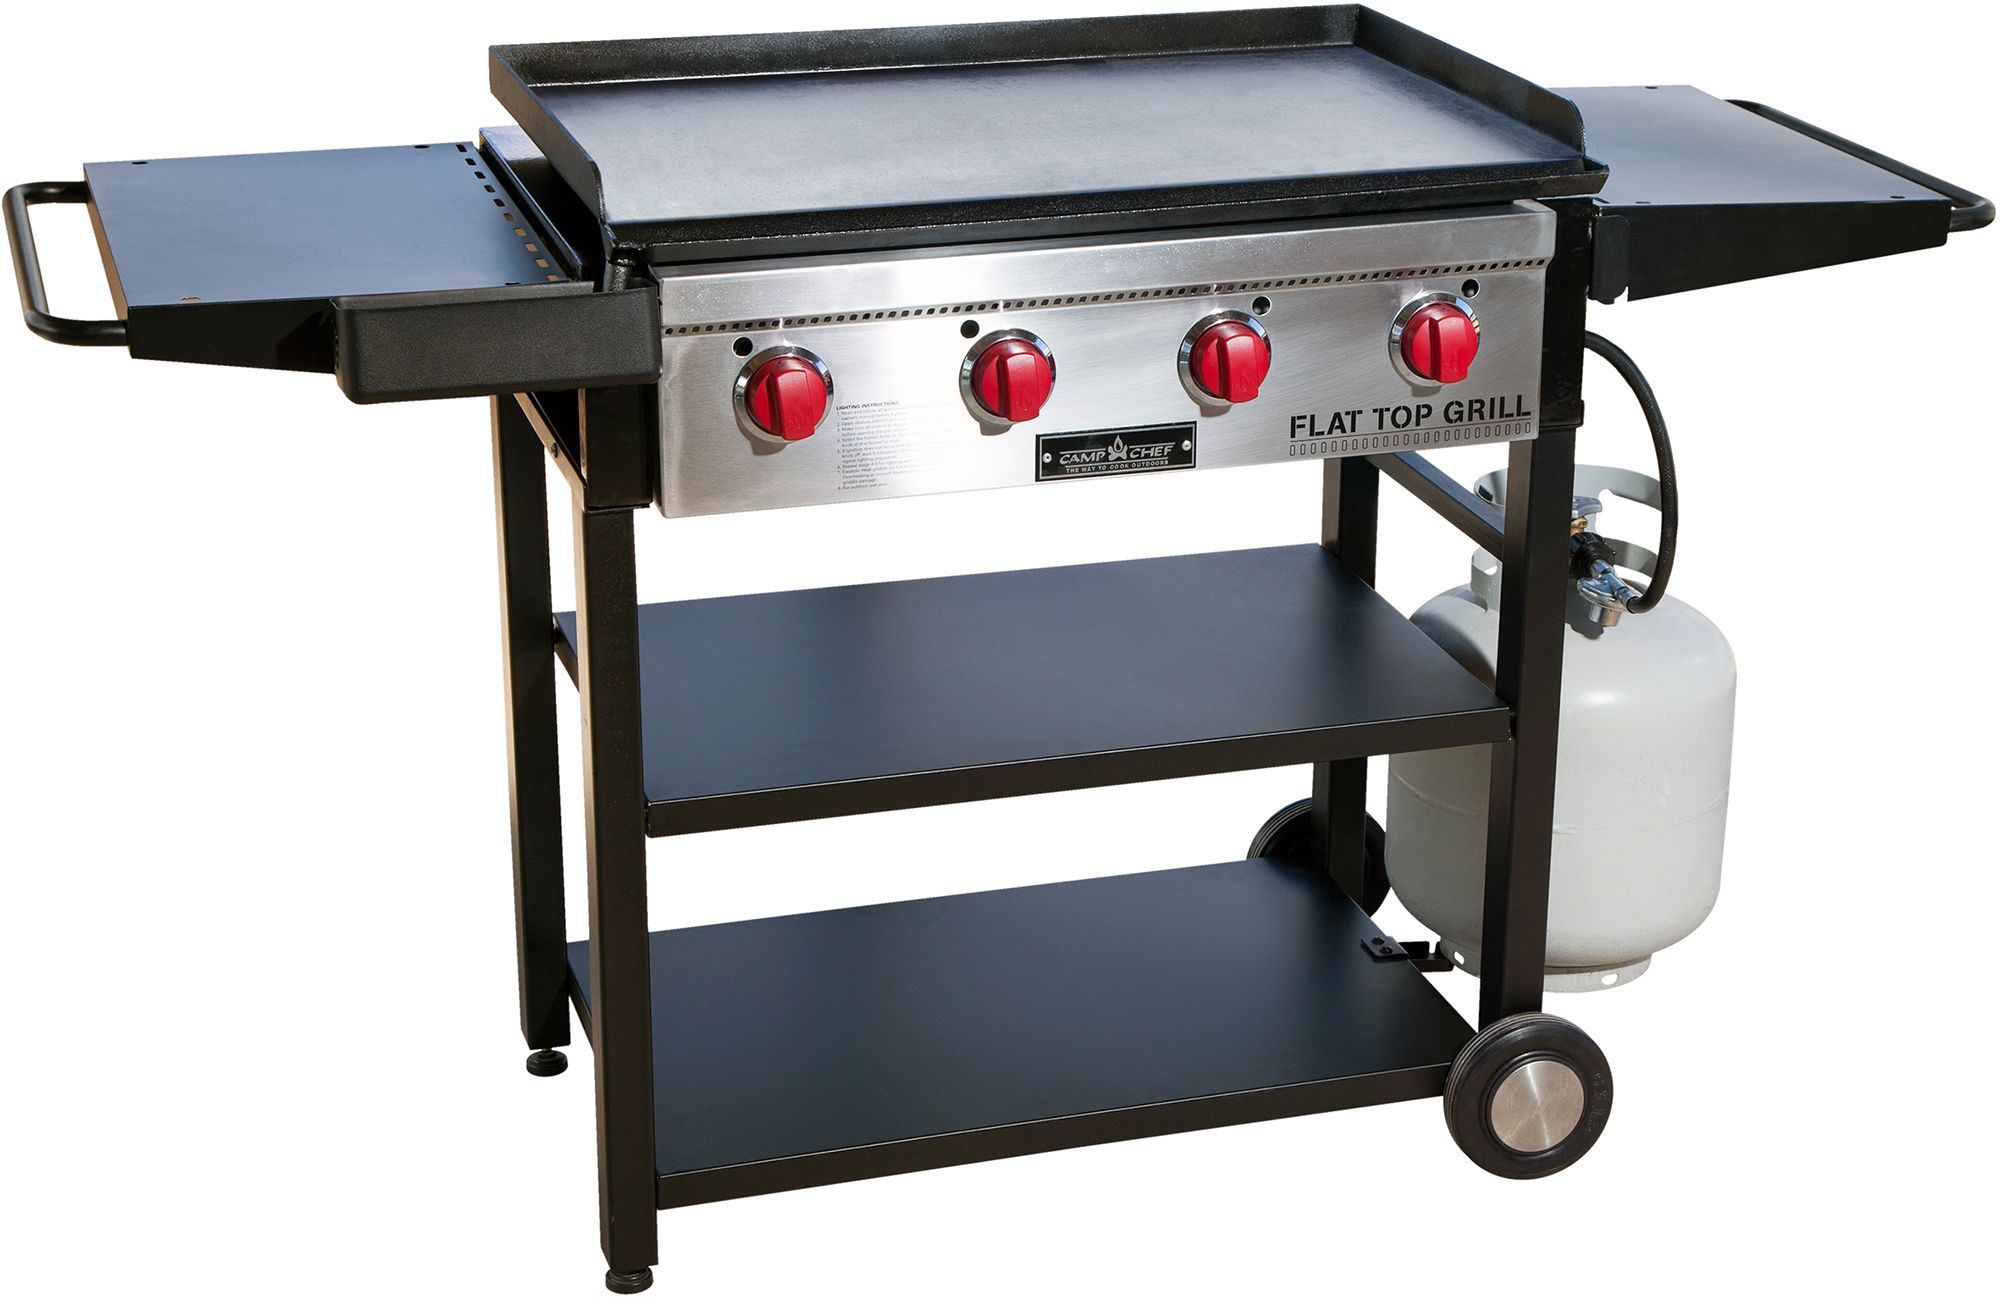 Camp Chef Flat Top Grill DICKS Sporting Goods